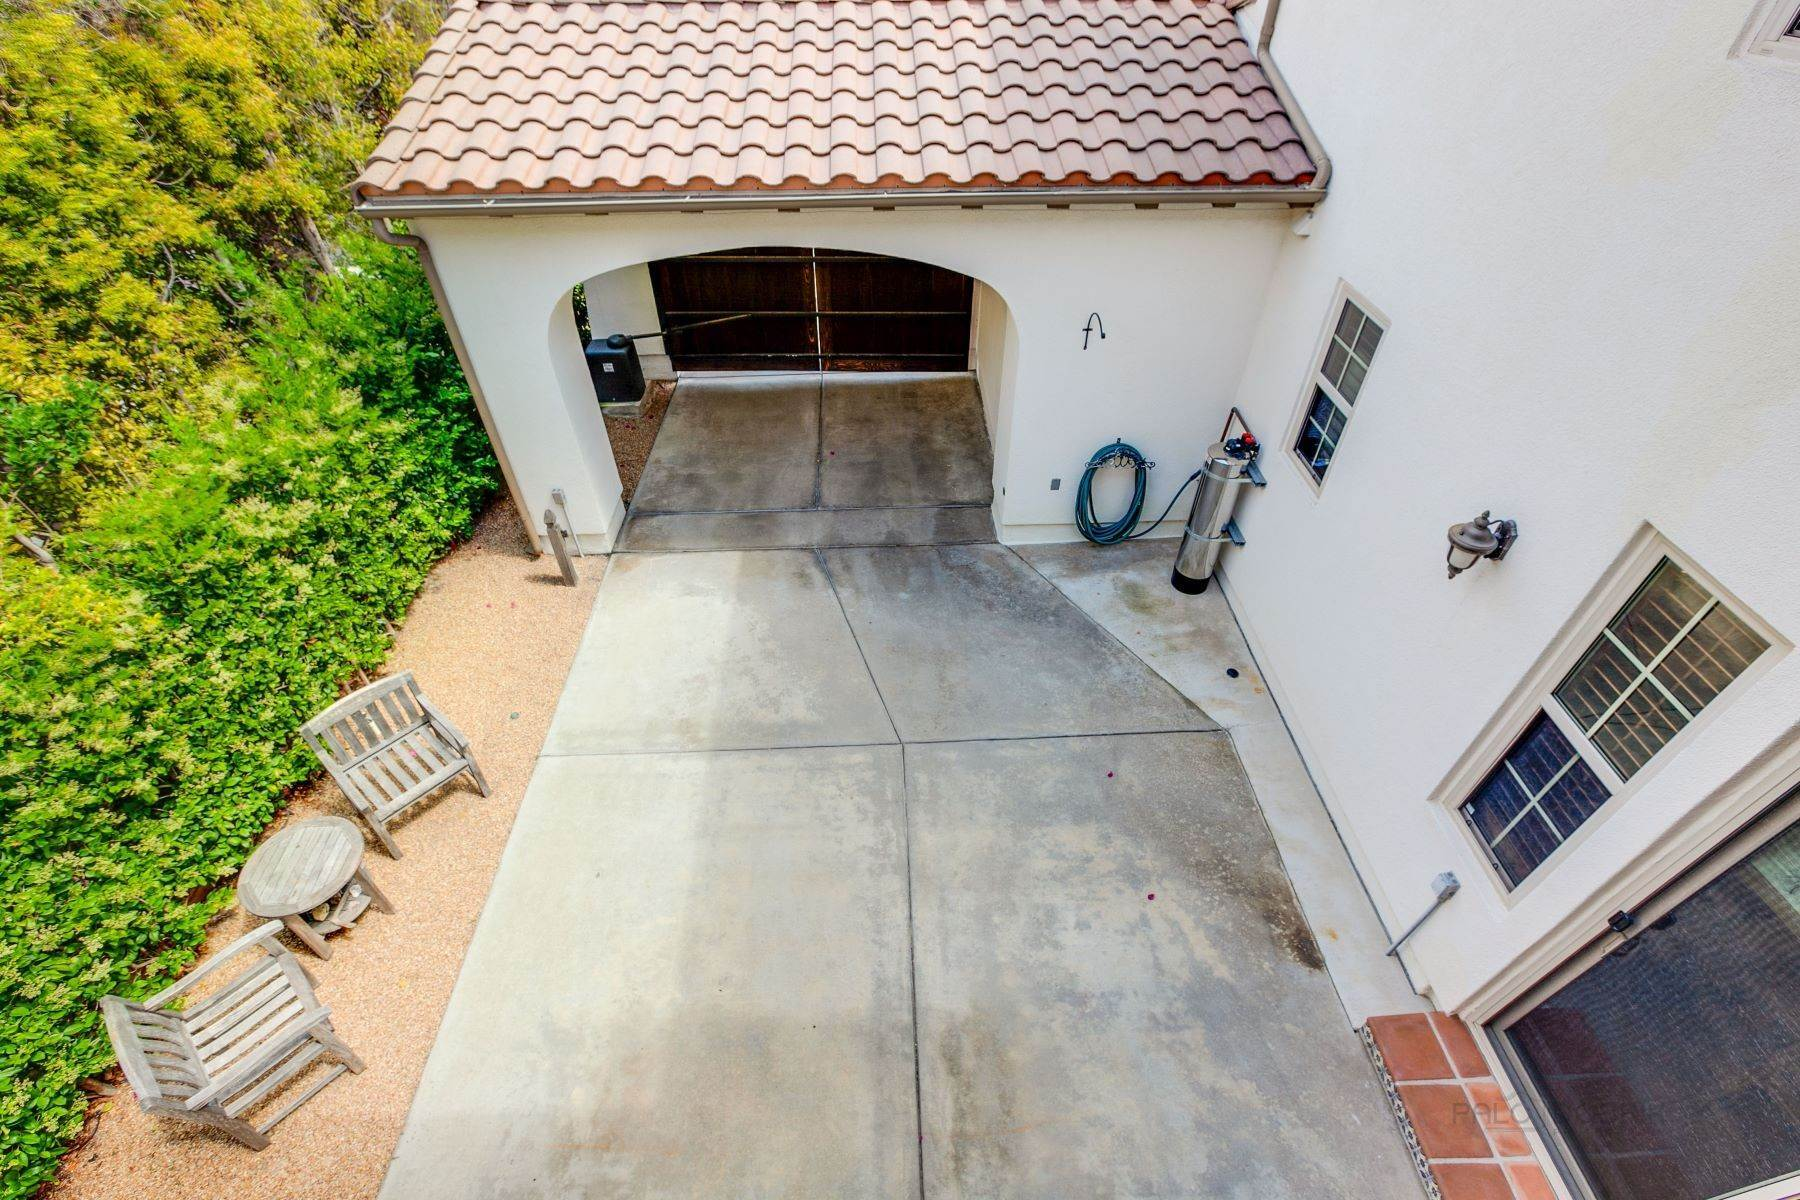 35. Single Family Homes for Sale at 13512 Moonflower Meadows Trail, San Diego, CA 92130 13512 Moonflower Meadows Trail San Diego, California 92130 United States